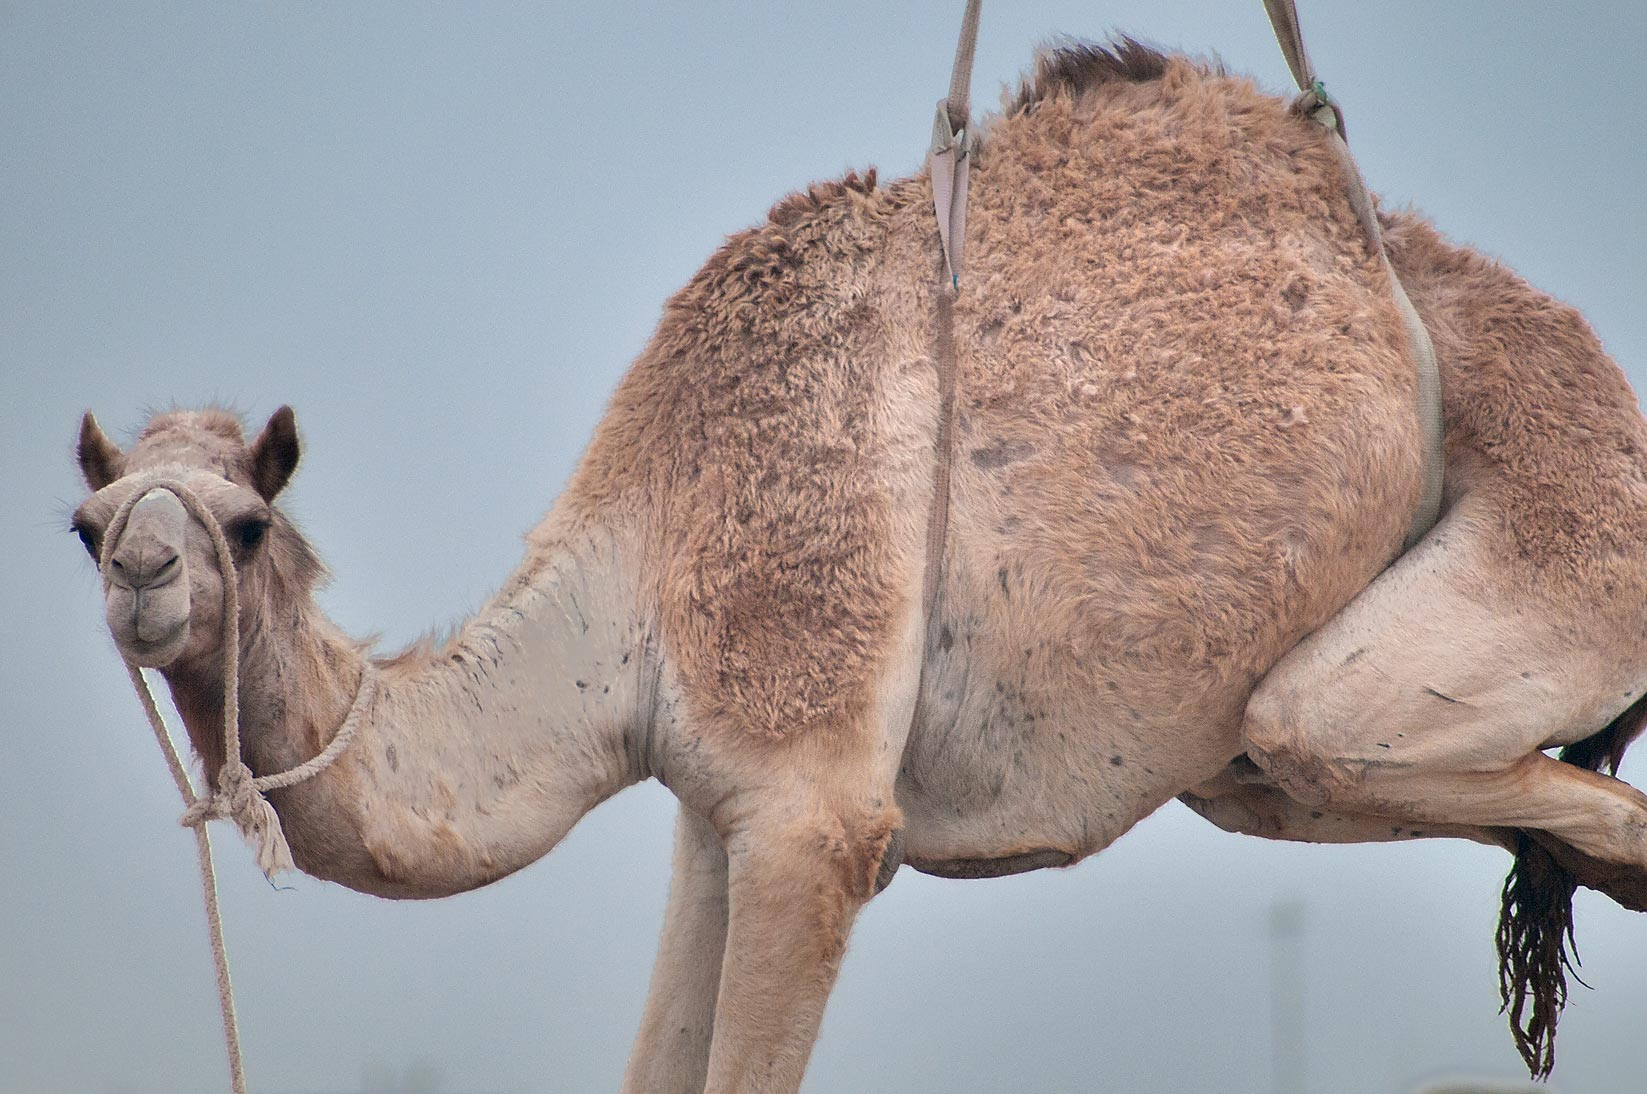 Docile camel suspended by crane in Camel Market, Wholesale Markets area. Doha, Qatar